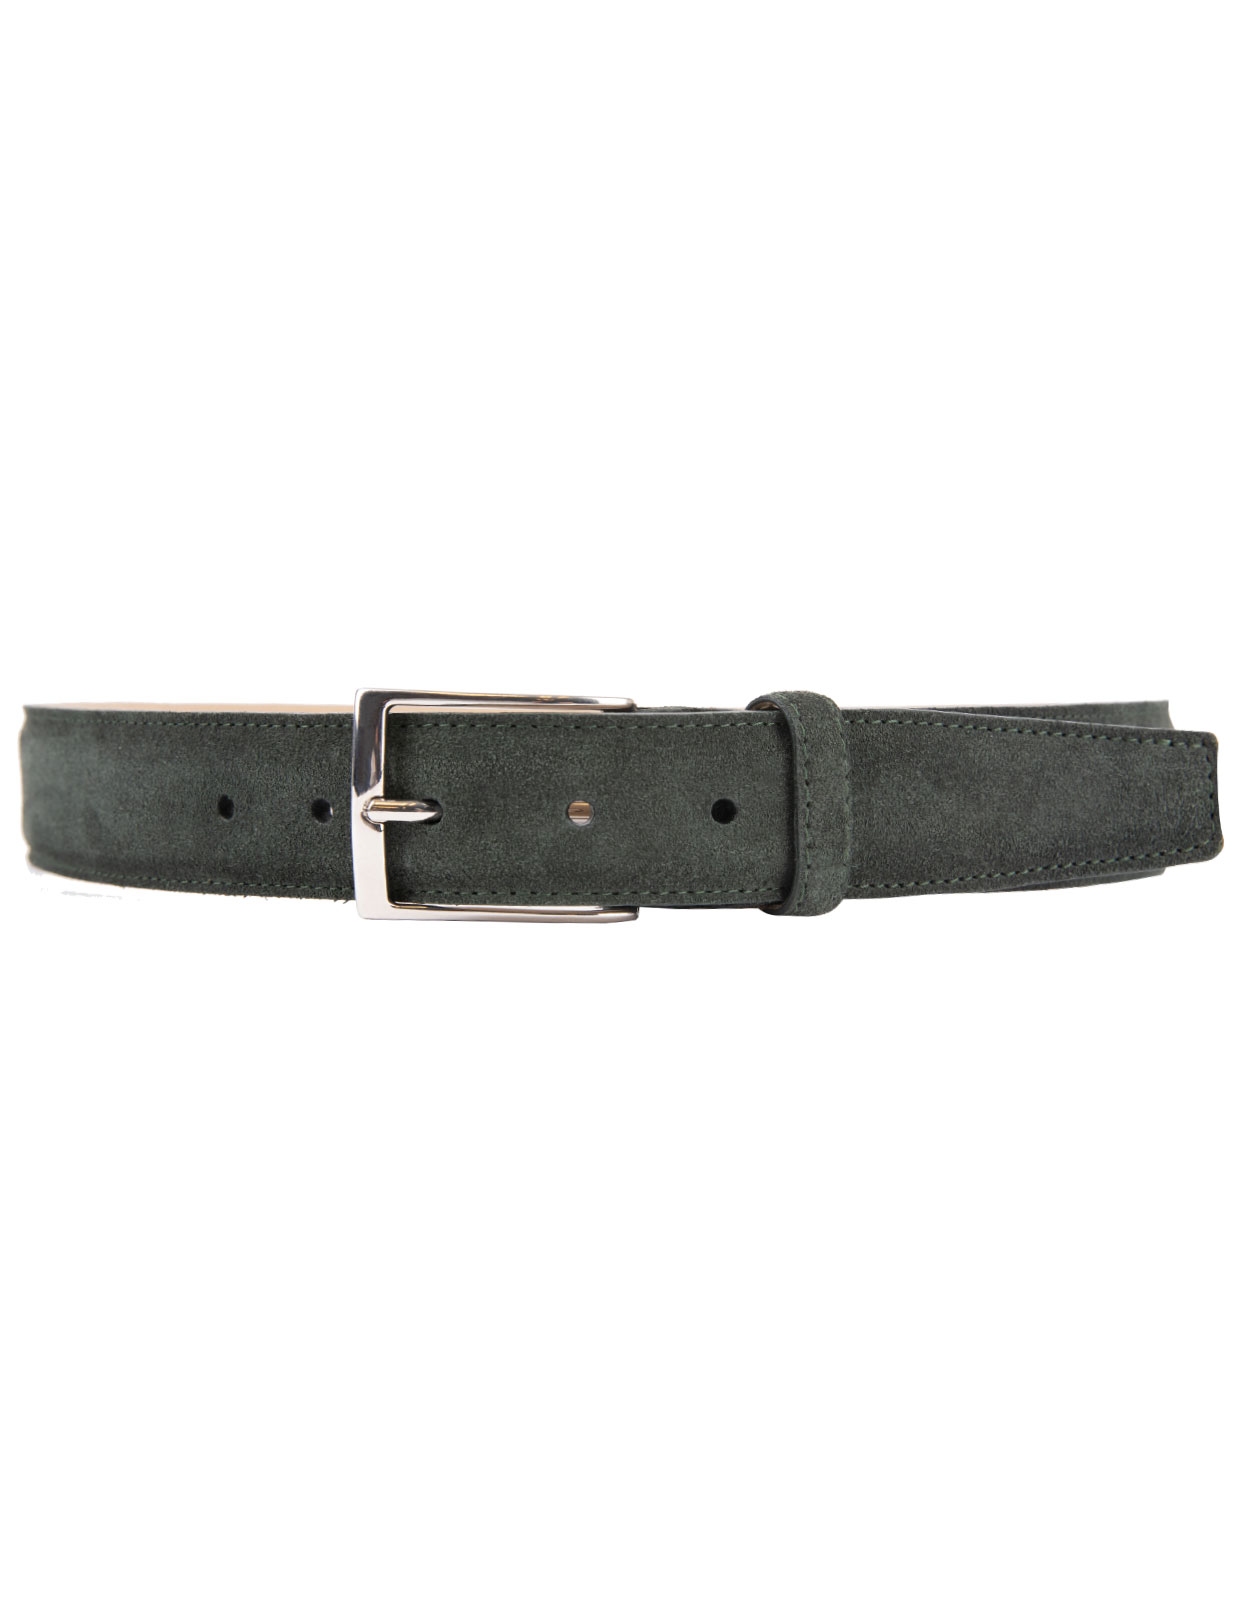 Timeless 3,5cm Belt Suede Calf Dark Olive